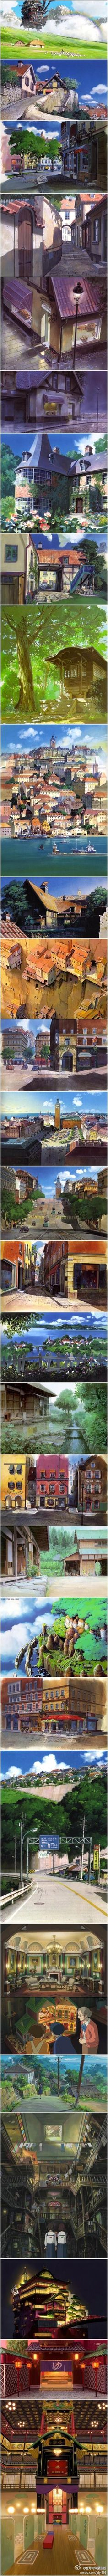 Background artwork for various films exquisitely done by Hayao Miyazaki and his team at Studio Ghibli. Environment Concept Art, Environment Design, Hayao Miyazaki, Animation Background, Art Background, Art Internet, Ghibli Movies, Howls Moving Castle, Anime Scenery